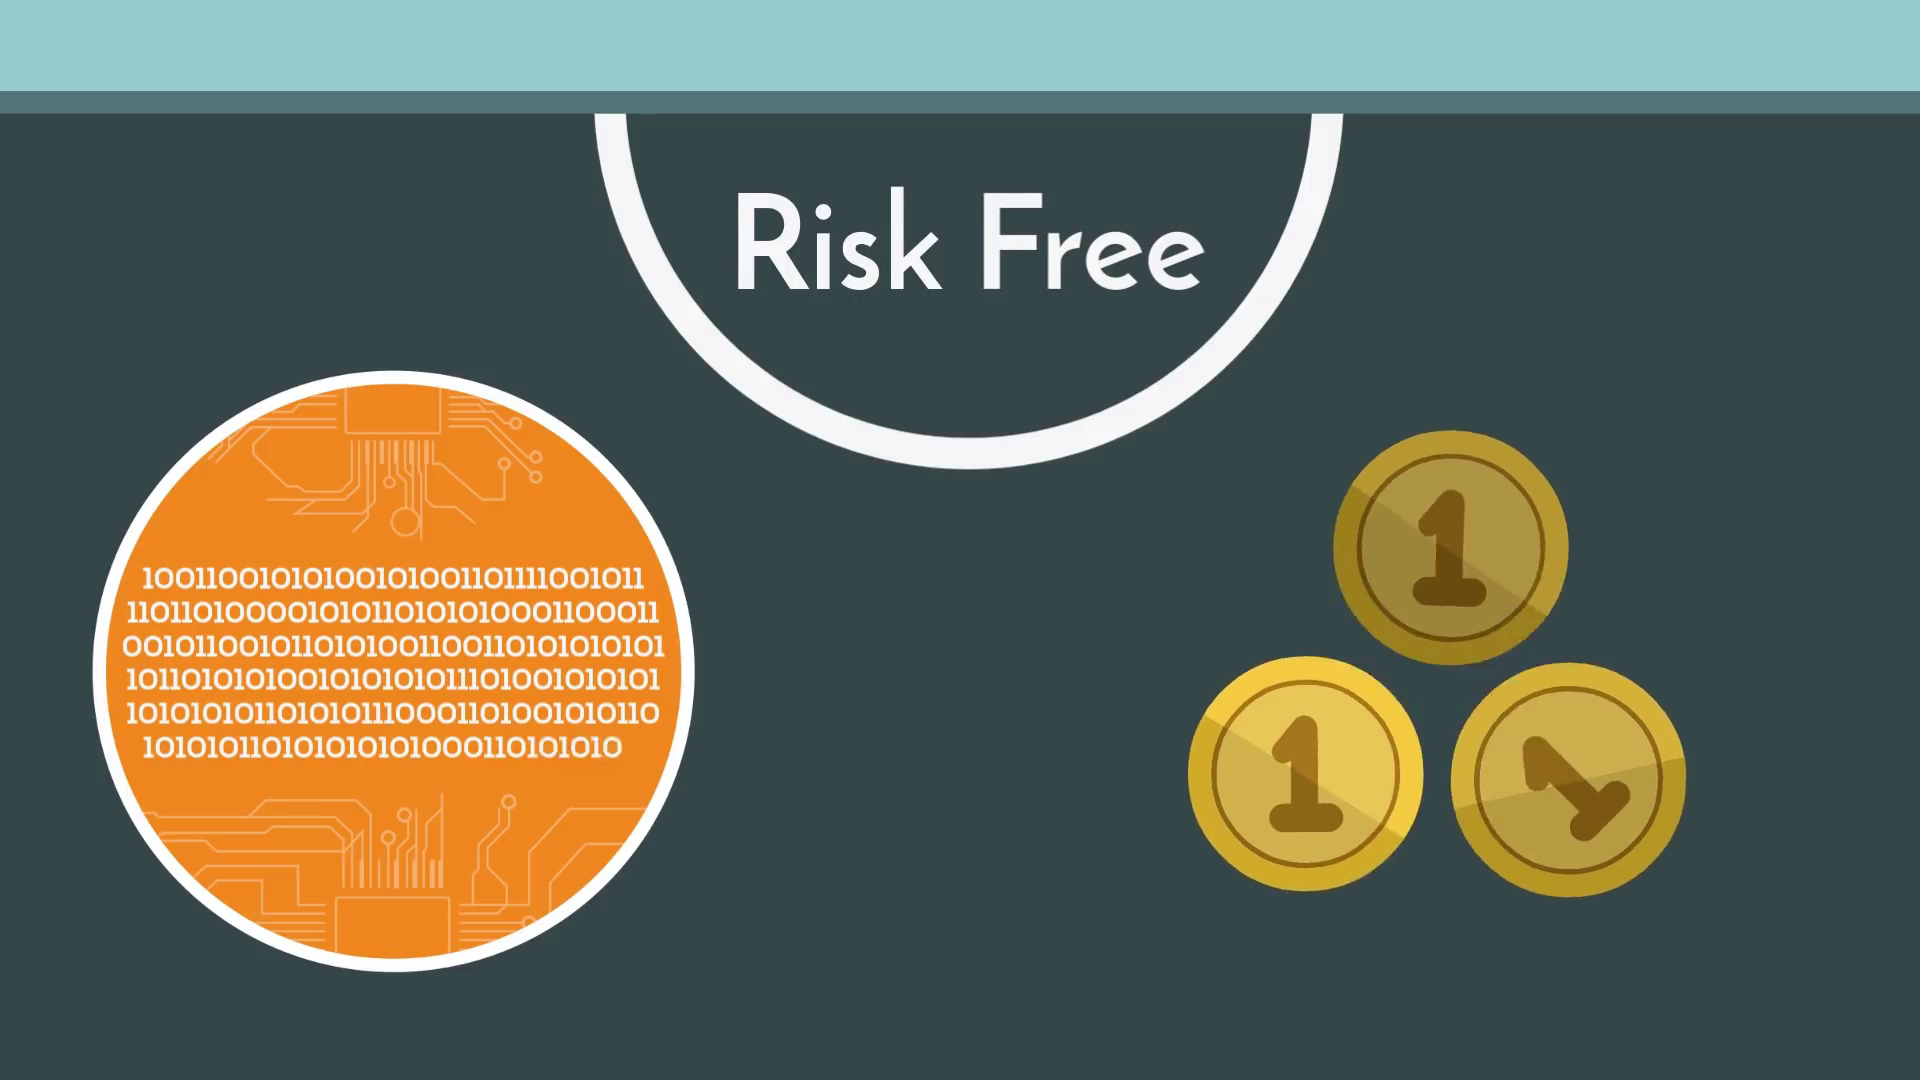 Risk-free contract market